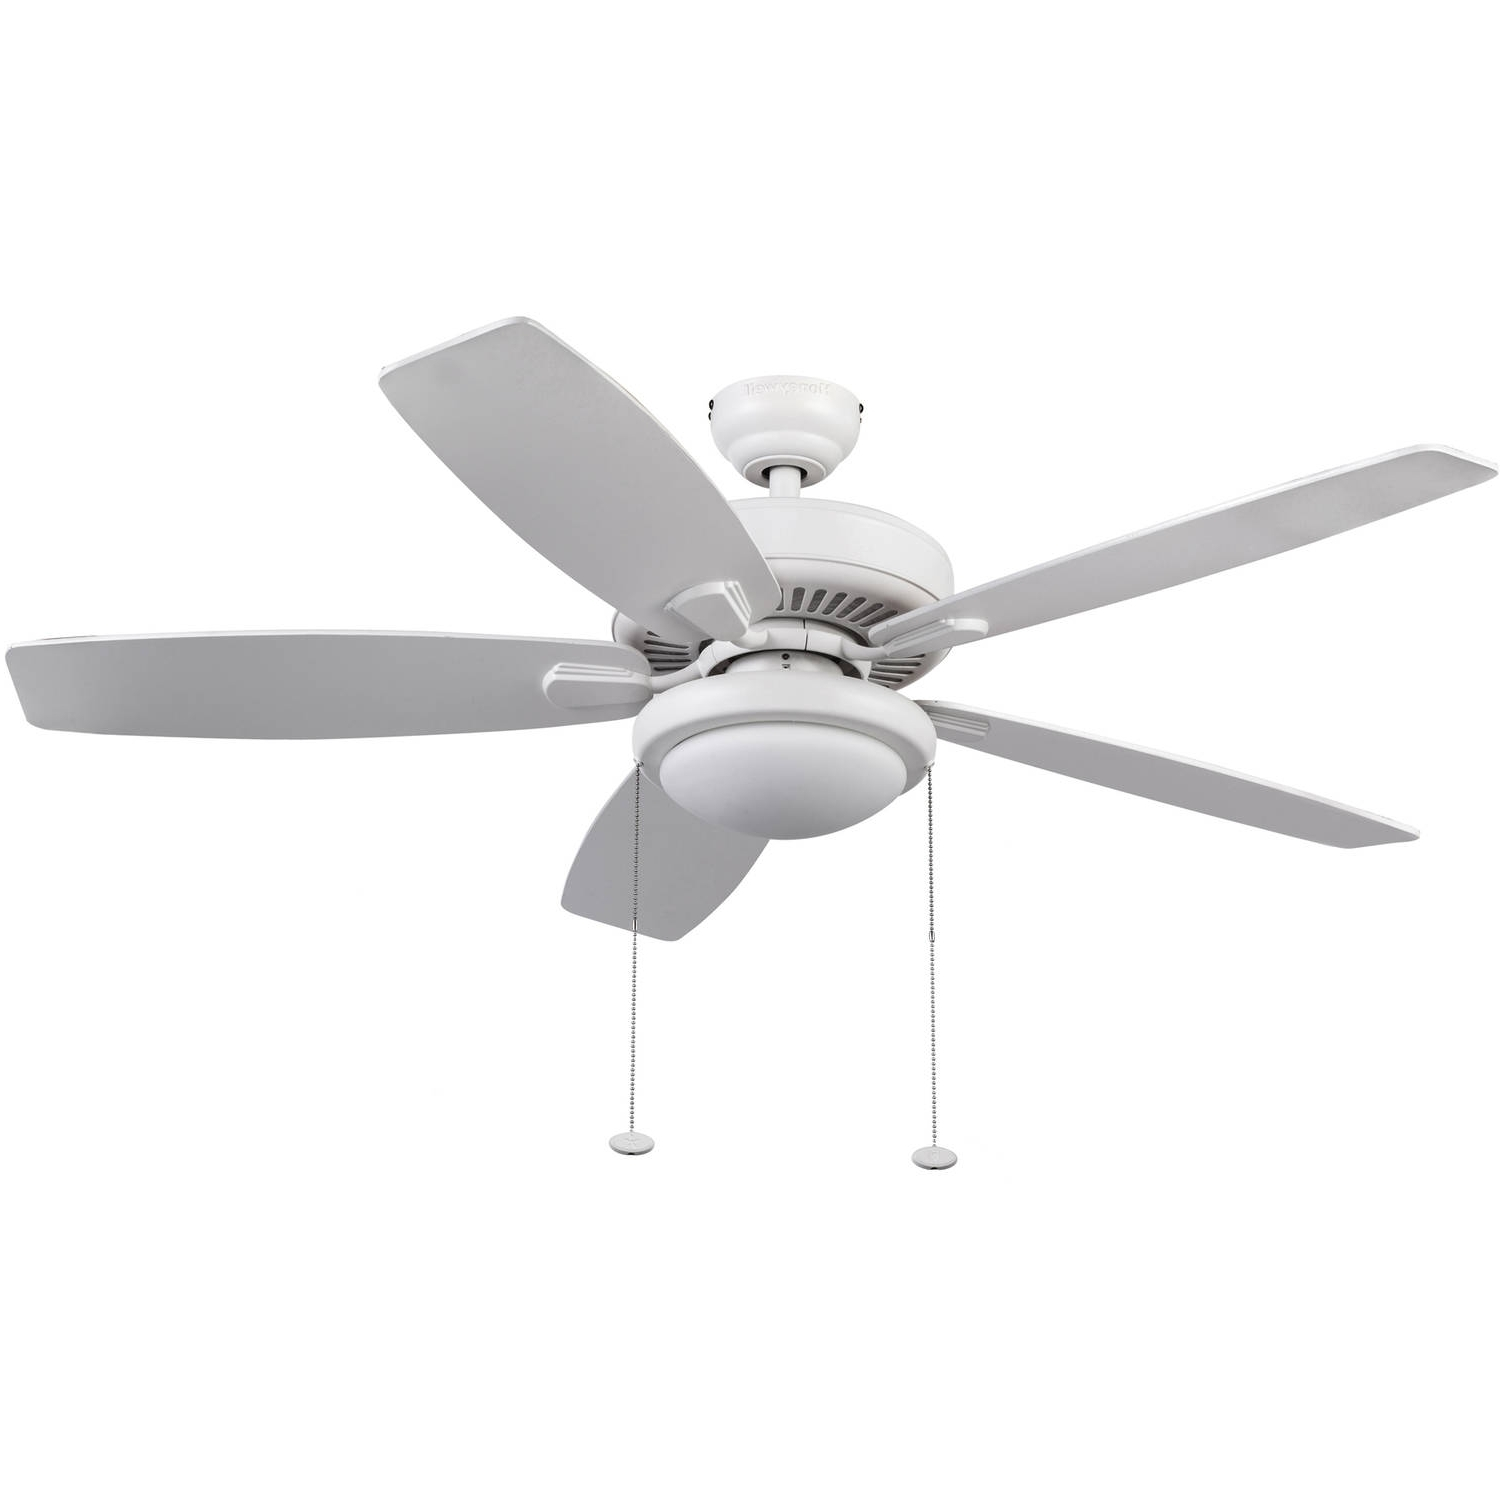 "Honeywell Blufton 52"" White Outdoor Ceiling Fan – Walmart In Fashionable Exterior Ceiling Fans With Lights (View 9 of 20)"